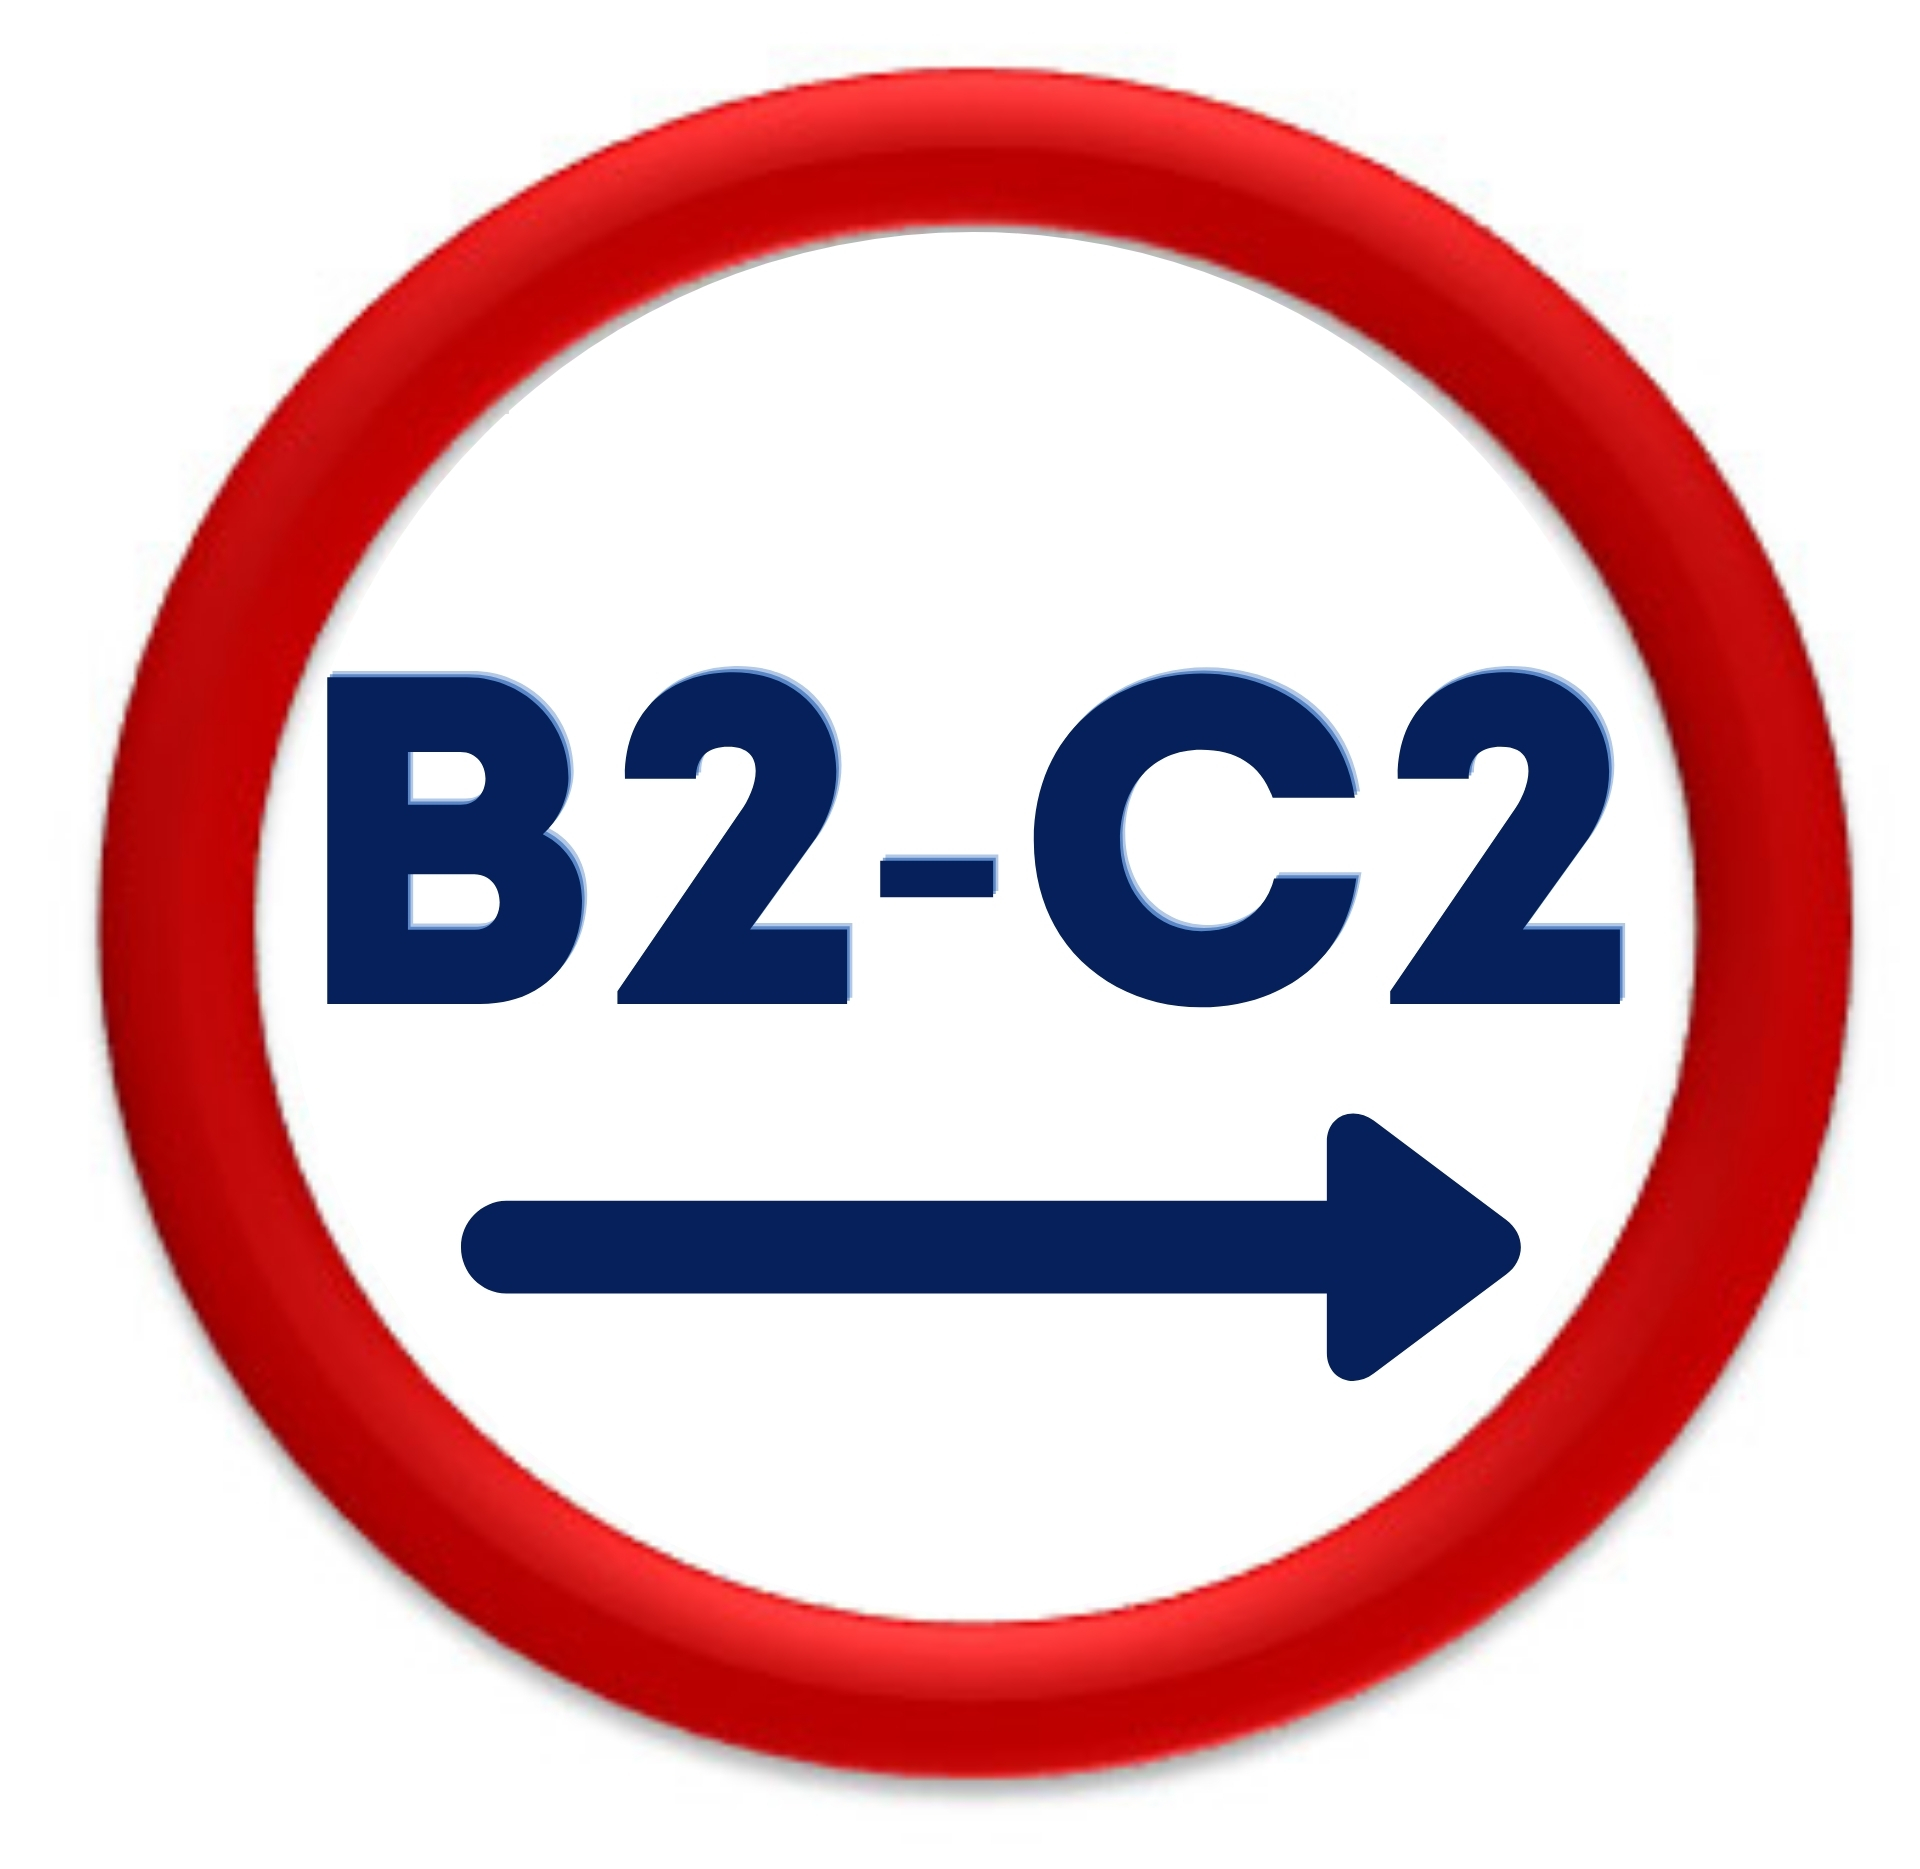 b2 to c2